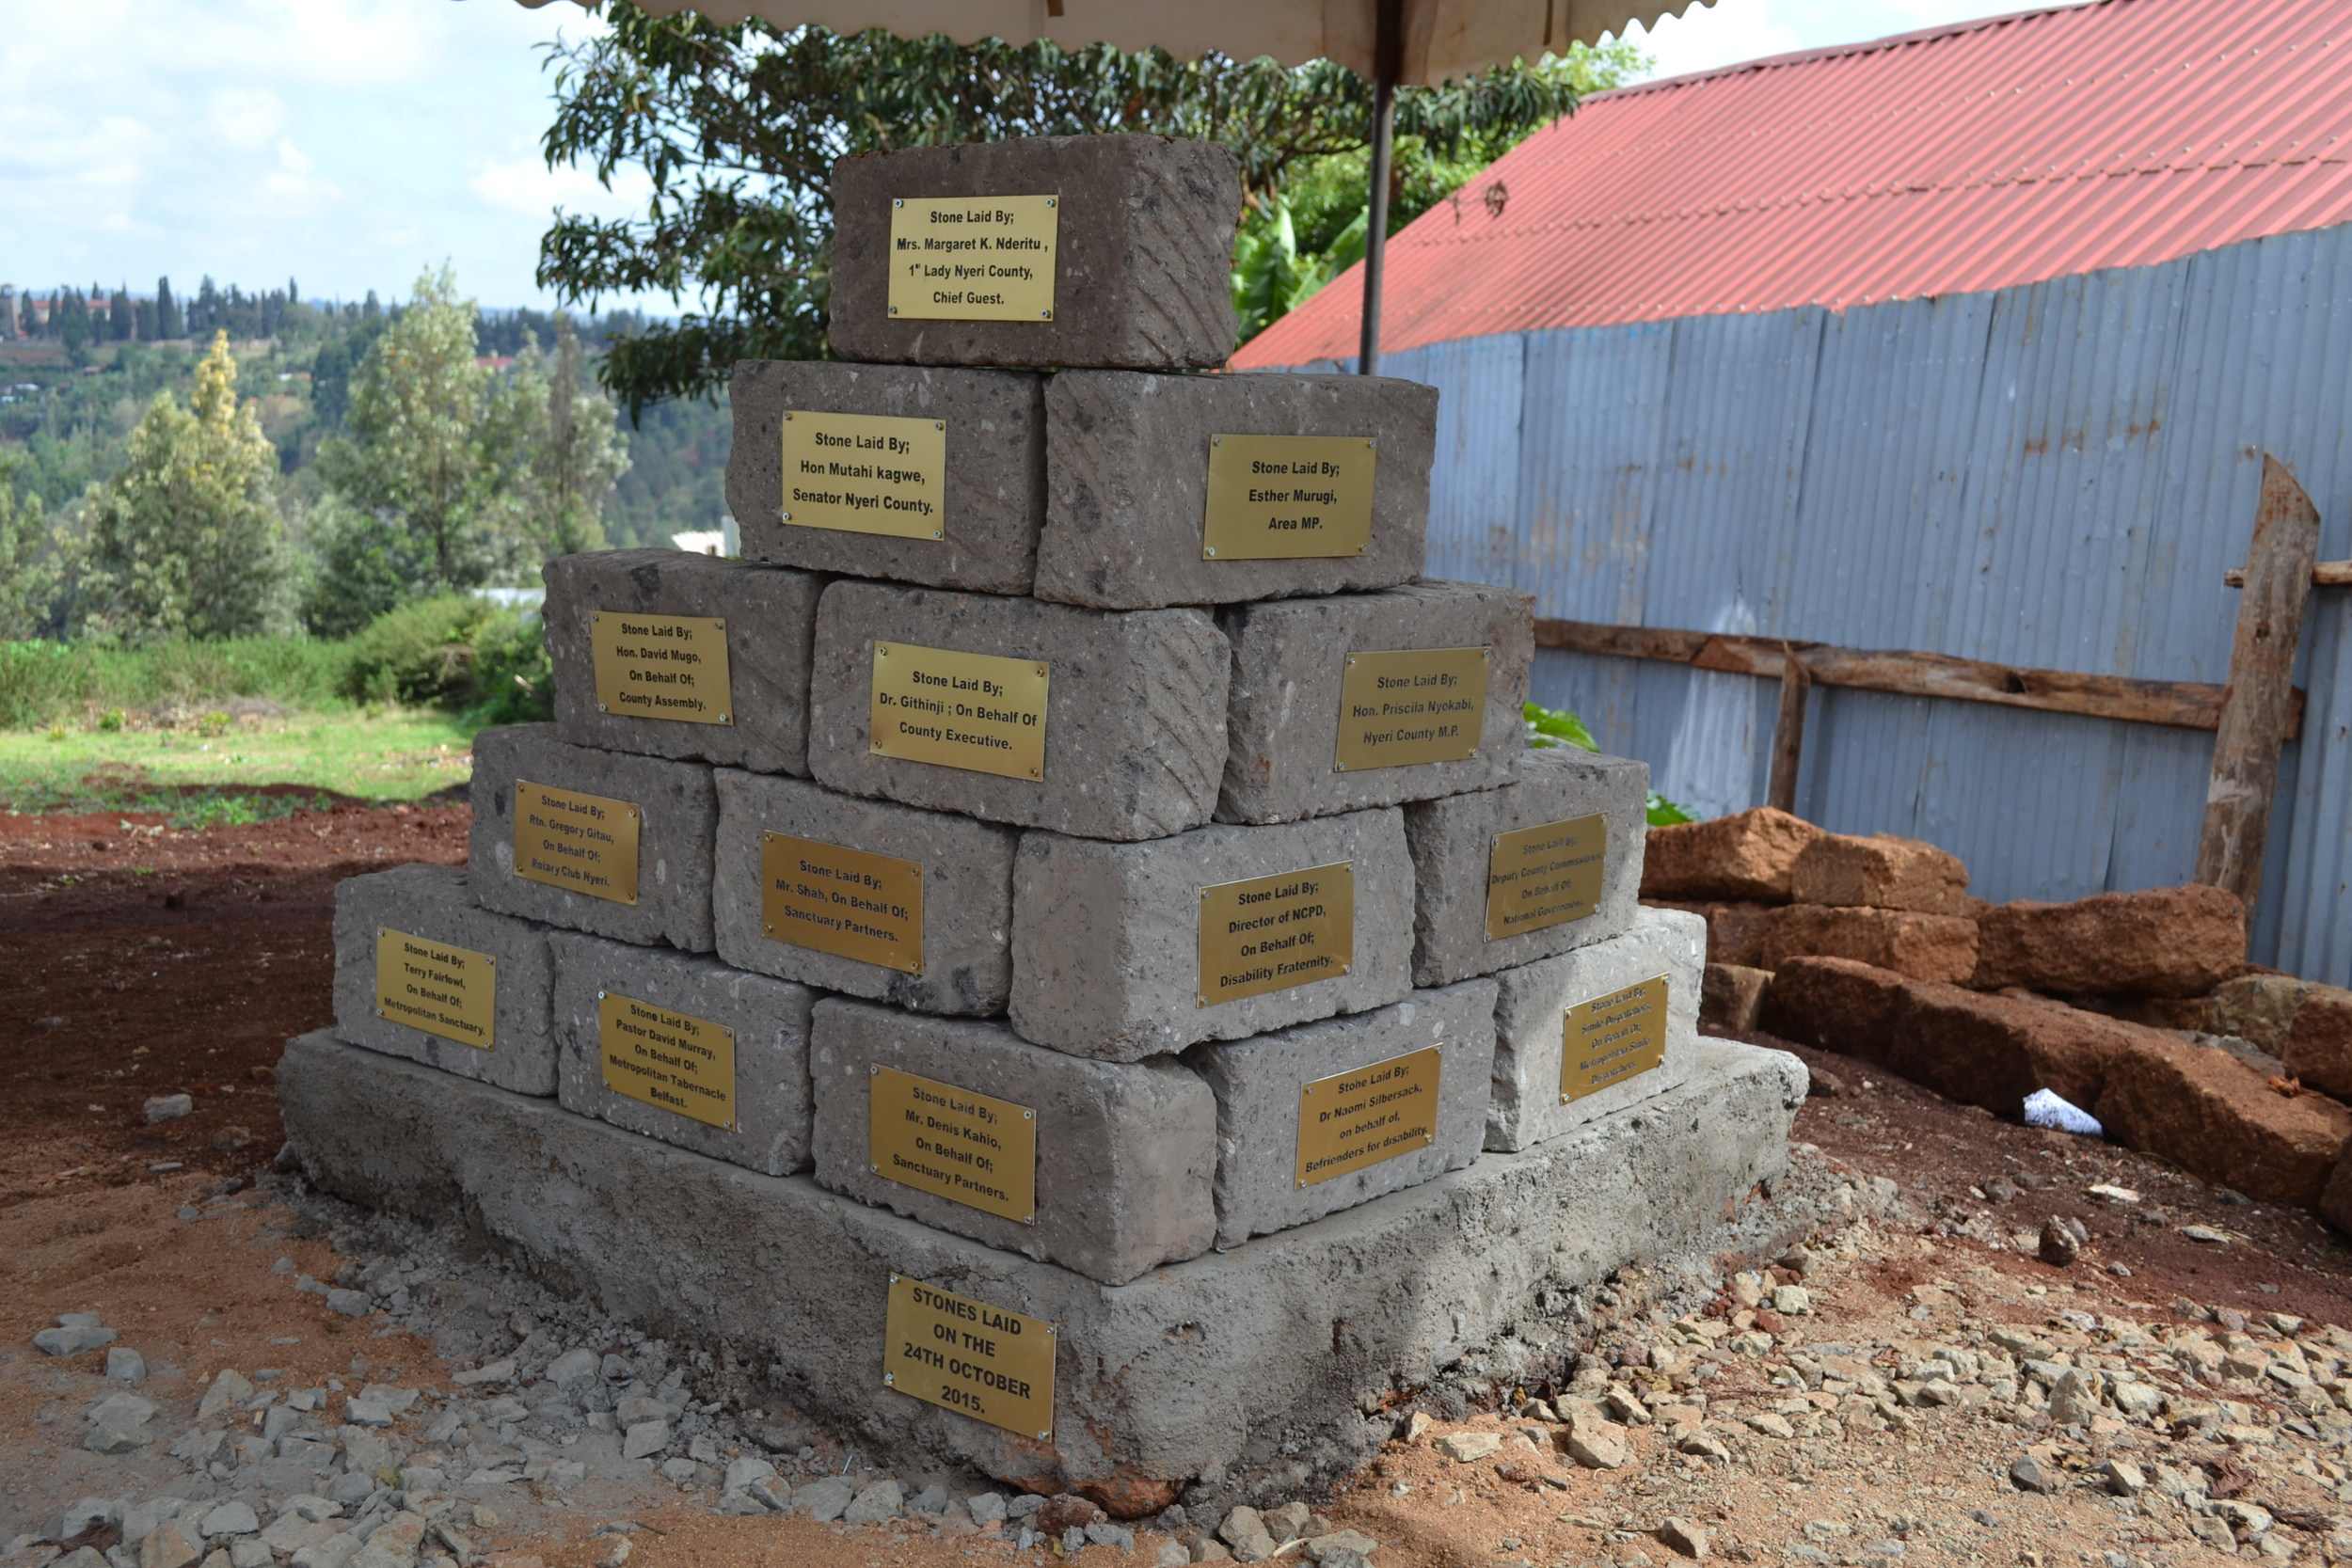 The foundation stones which will form part of the new, upgraded facilities at The Metropolitan Sanctuary.